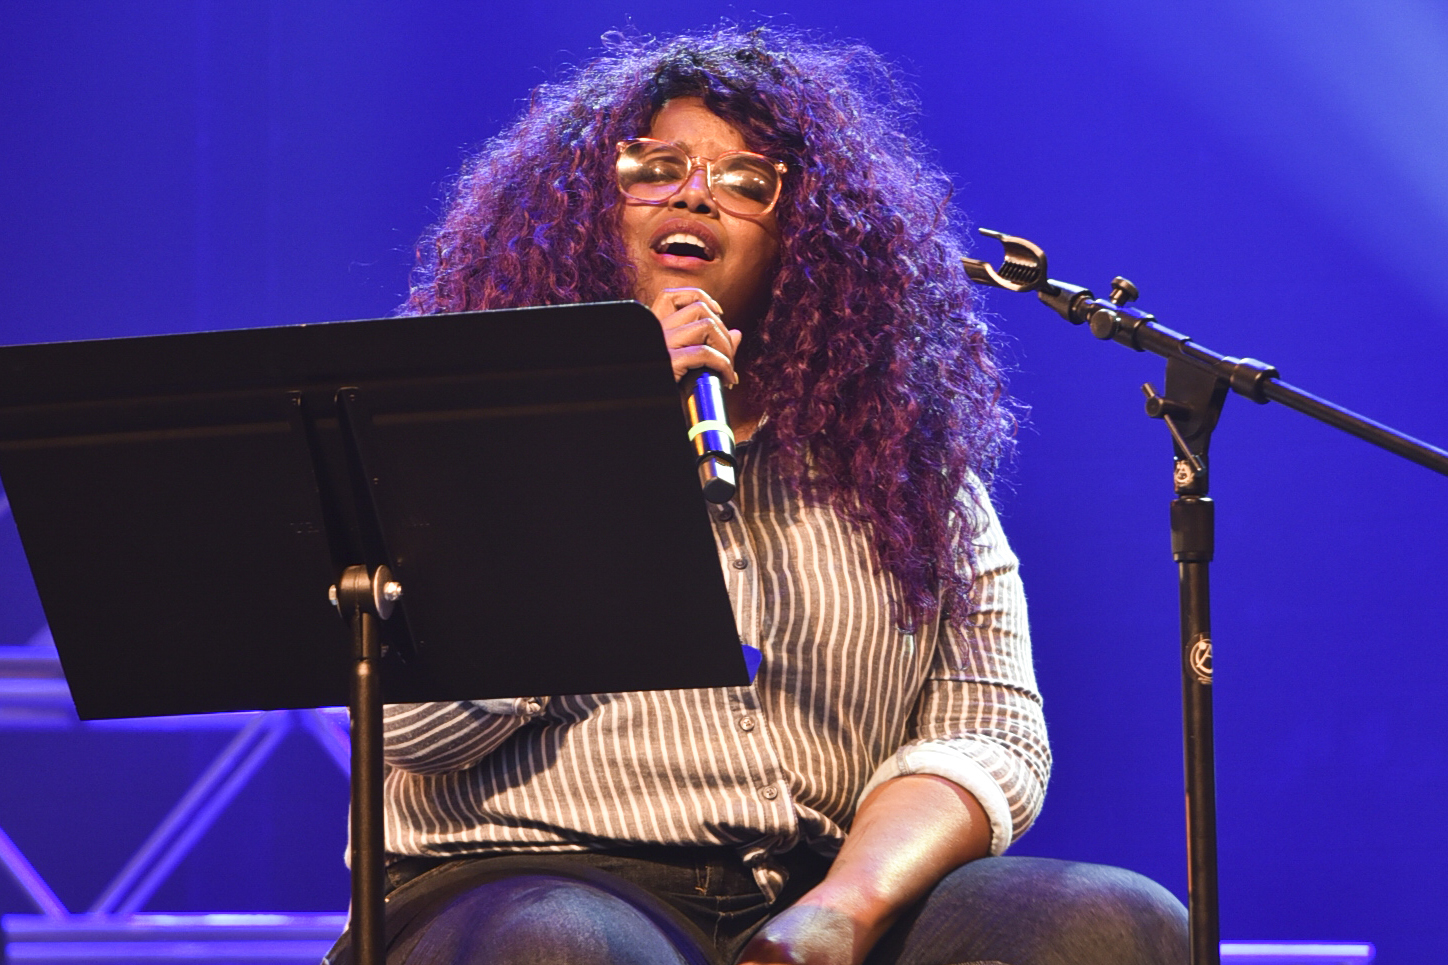 College hosts The Suffers' Kam Franklin for special event